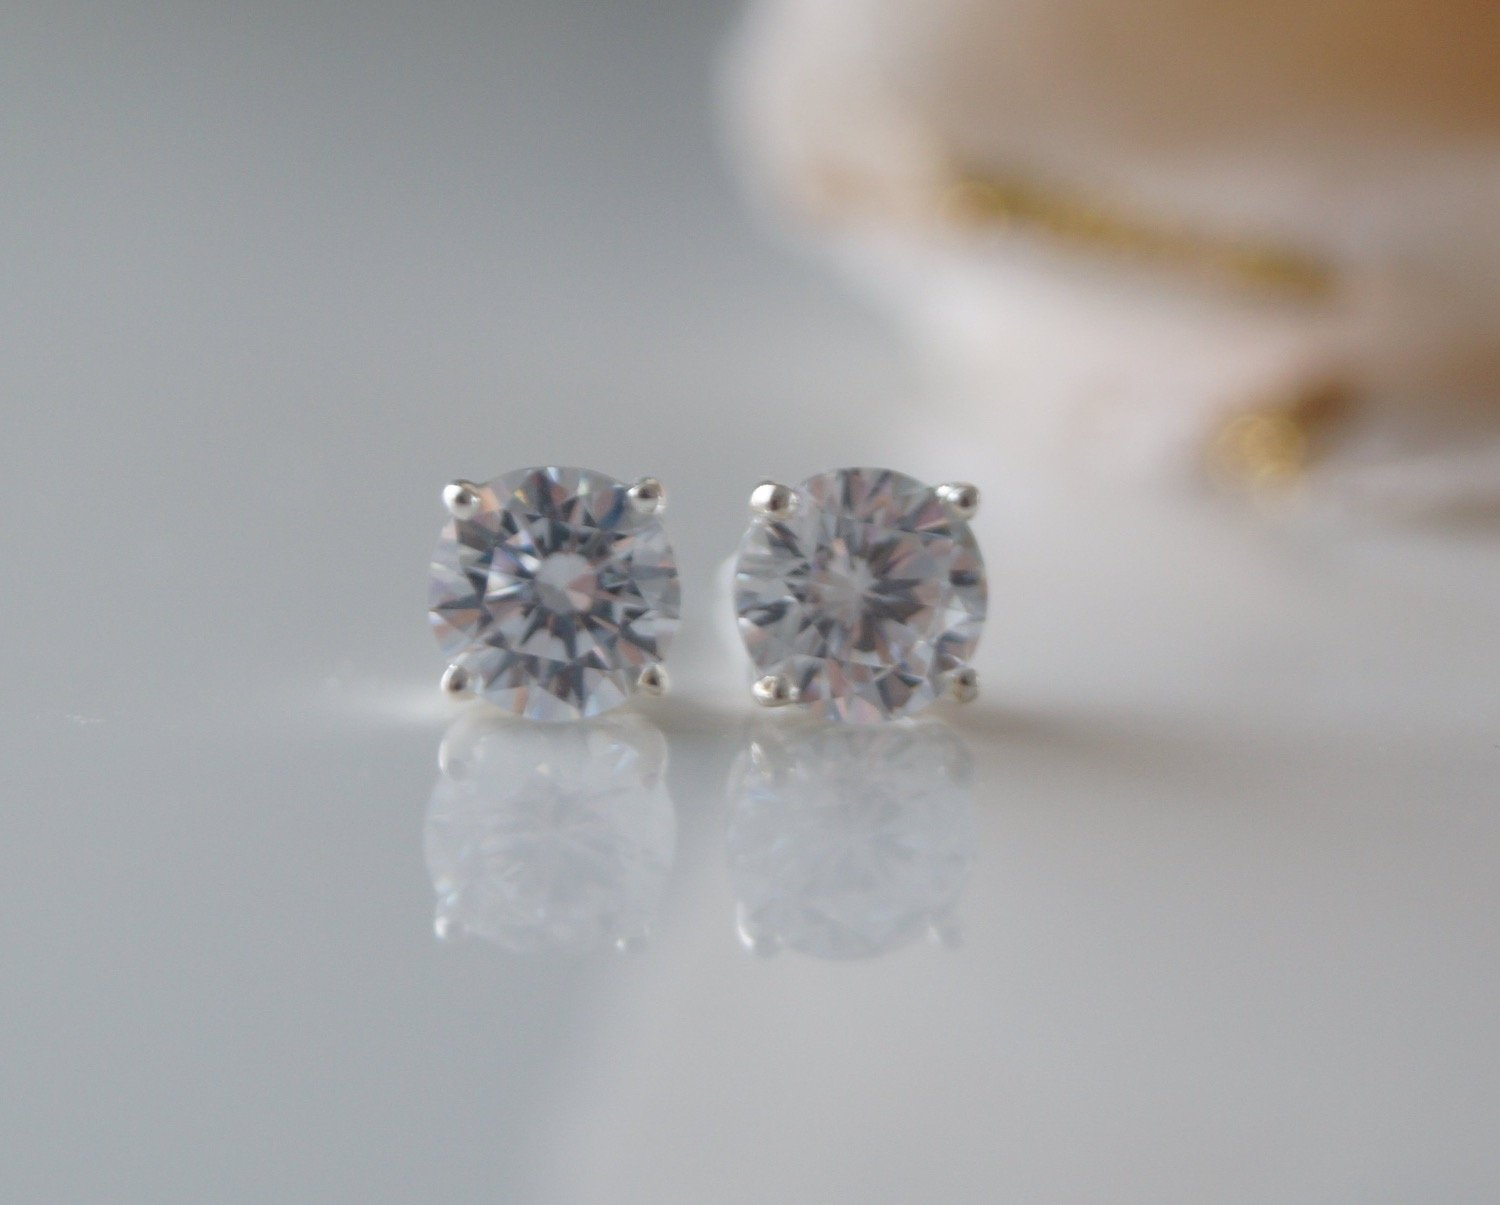 Crystal Cubic Zirconia Stud Earrings Wedding Jewelry - Clairesbridal - 3